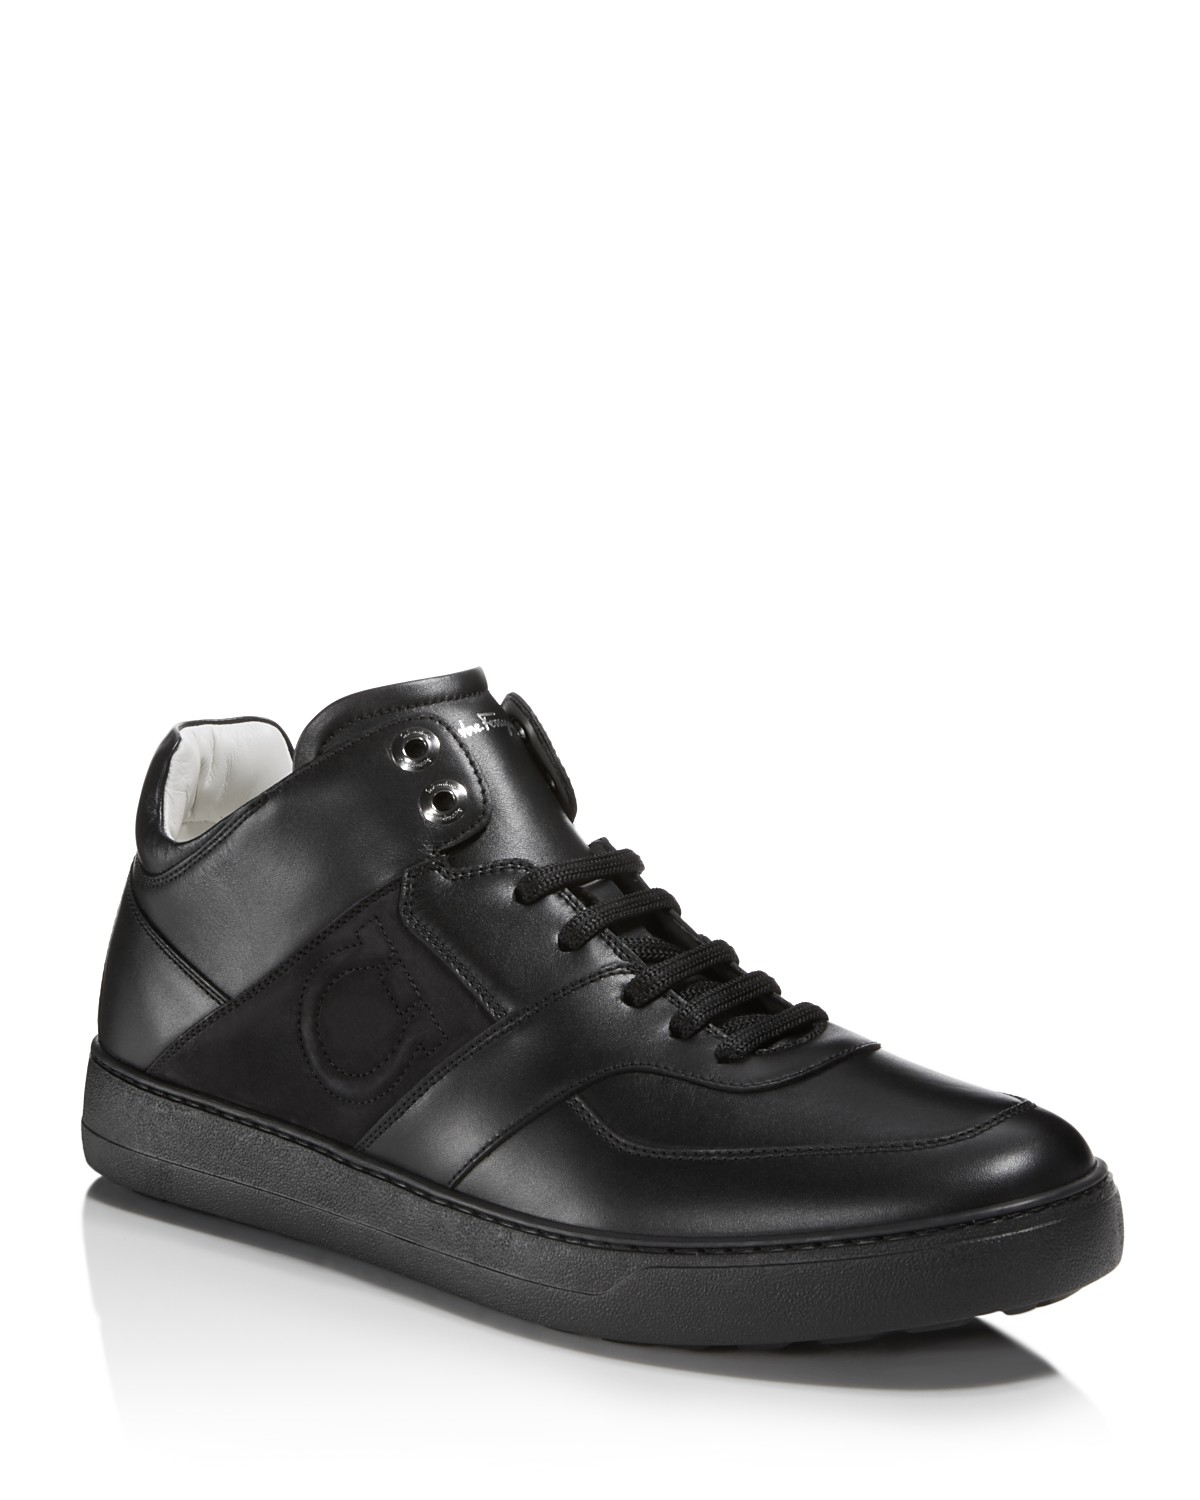 Salvatore FerragamoMen's Cliff Leather Mid Top Sneakers - 100% Exclusive wQxFo